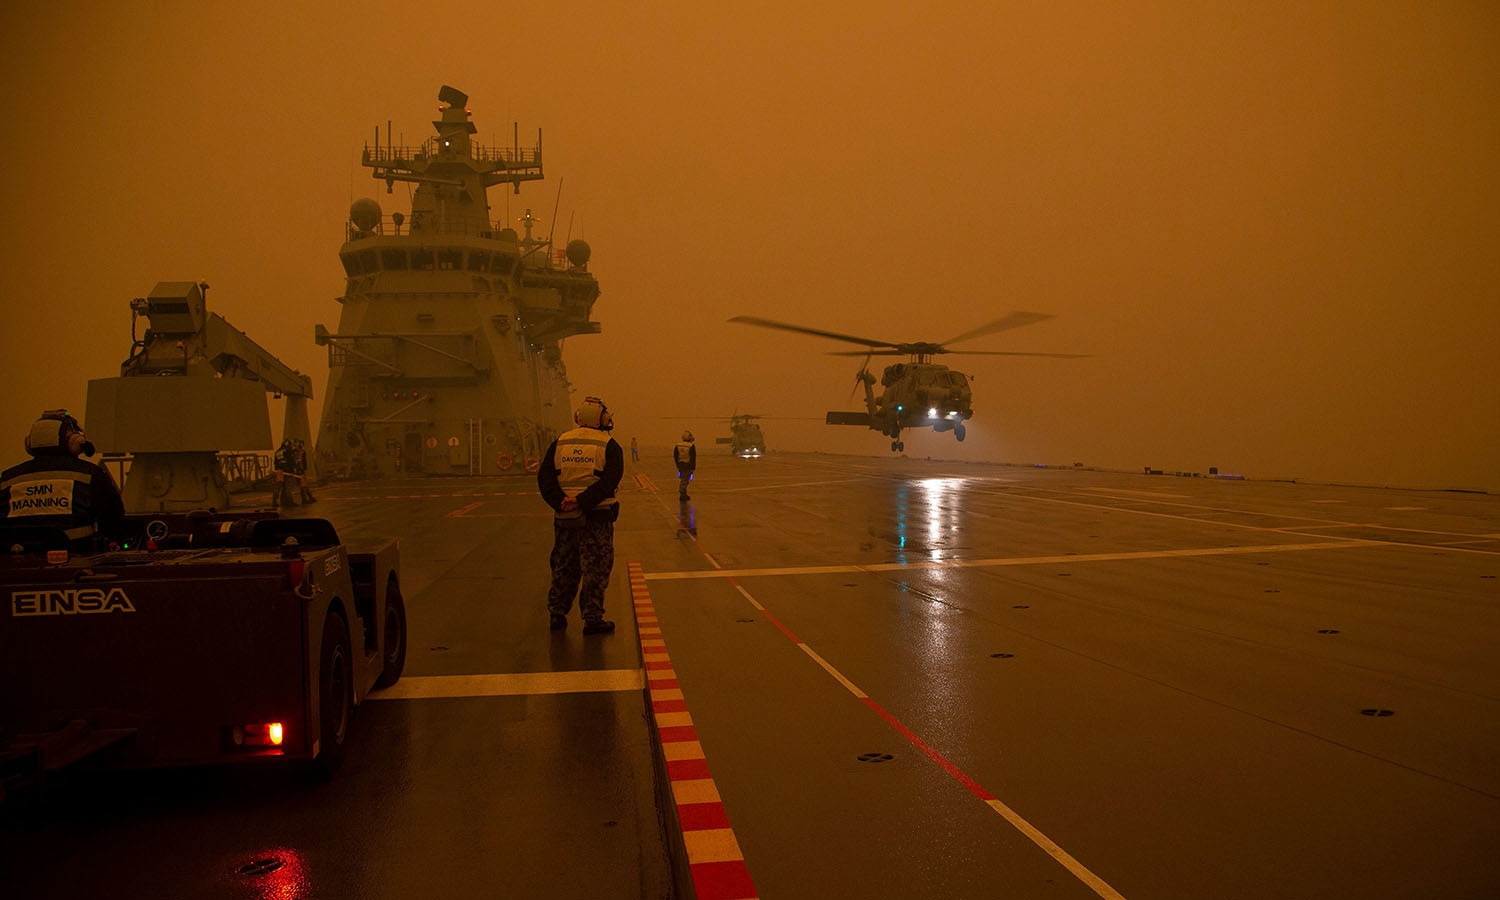 Royal Australian Navy MH-60R Seahawk 'Romeo' helicopters departing to take part in bushfire relief operations. — AFP